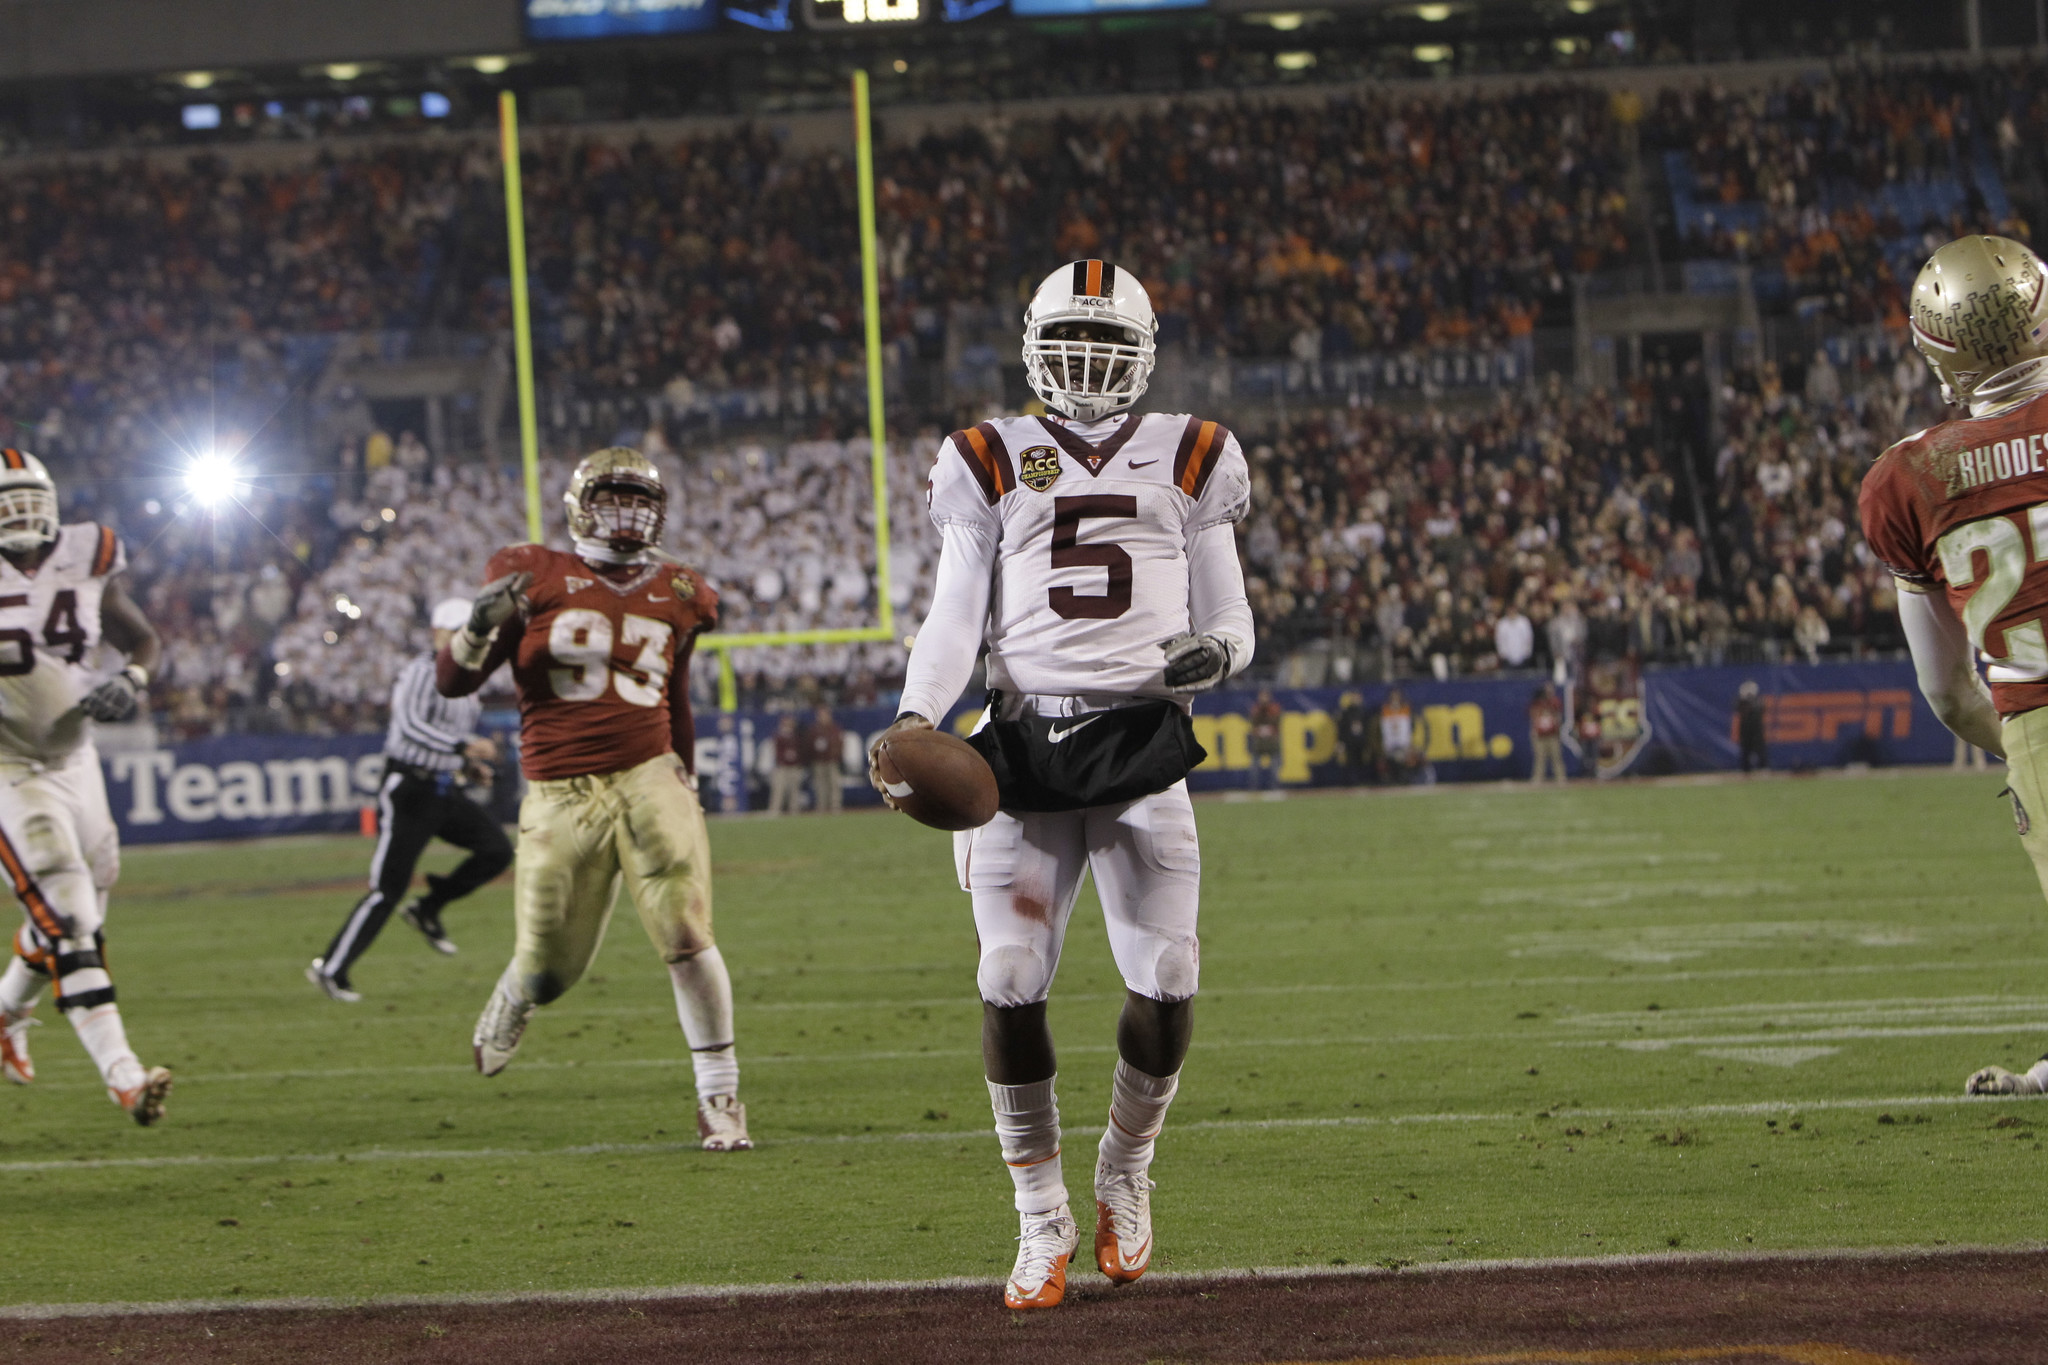 Dp-interactive-timeline-virginia-tech-in-the-acc-championship-game-20161202